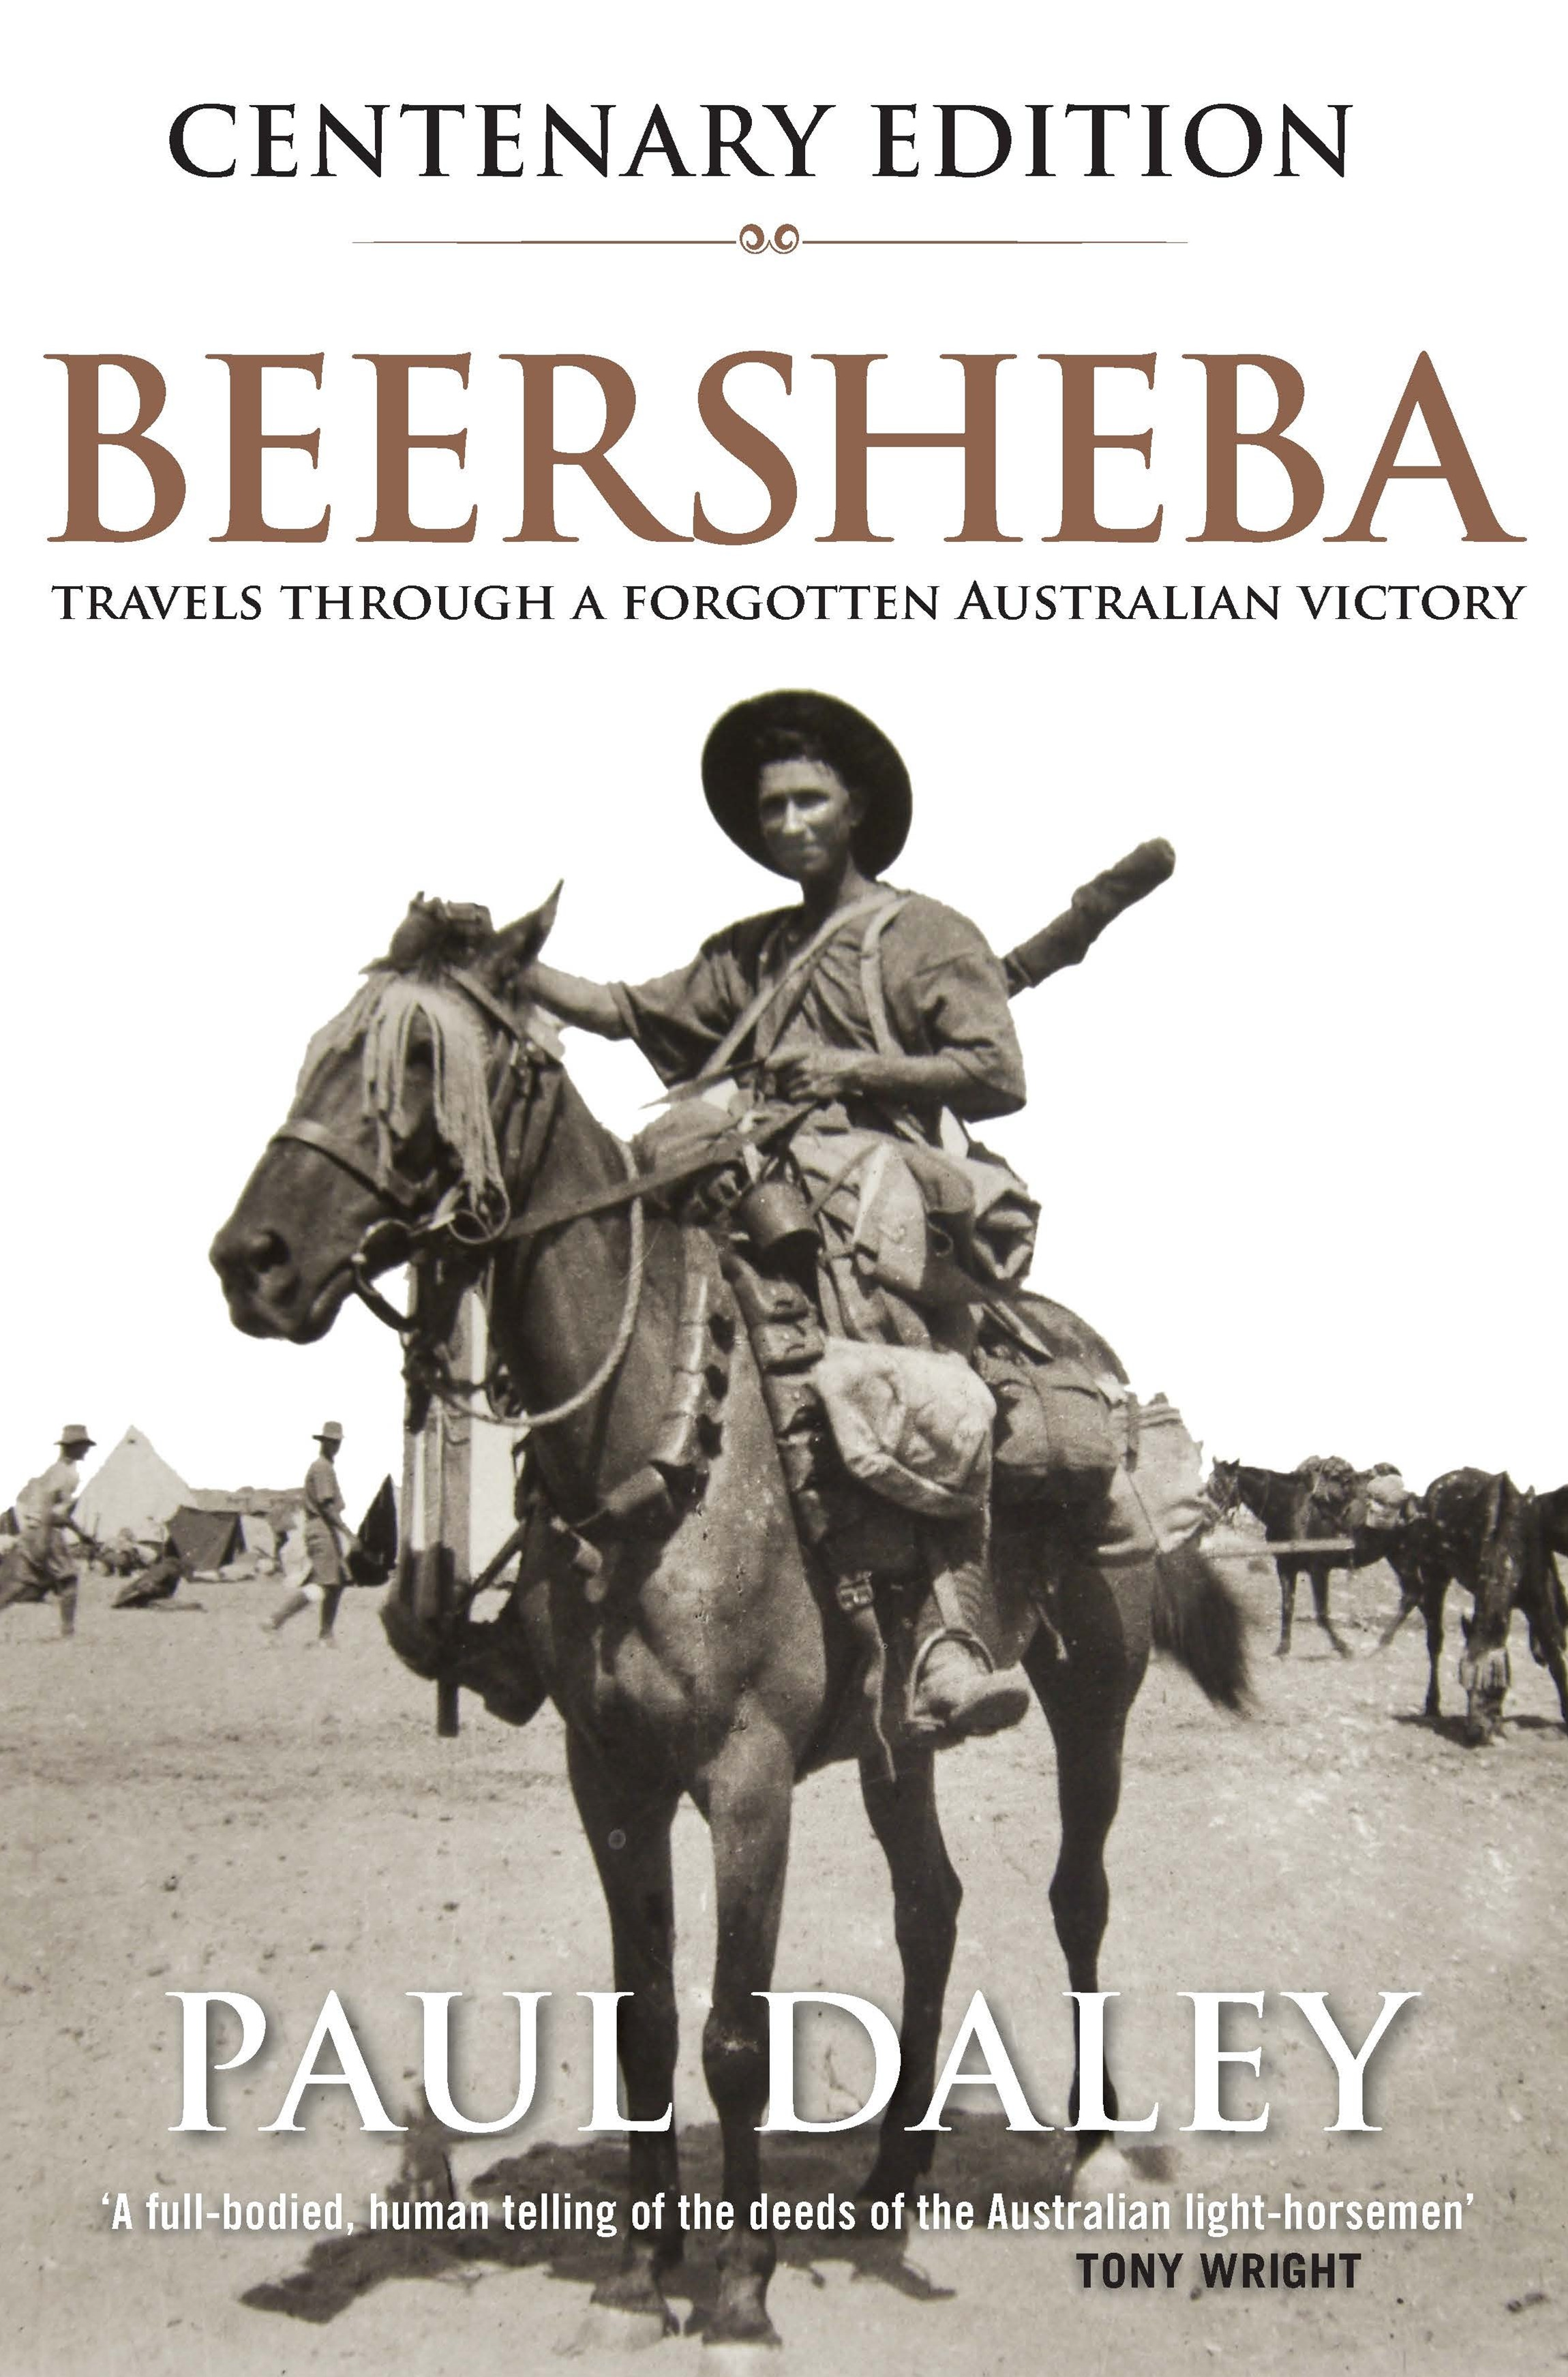 Beersheba Centenary Edition: Travels through a forgotten Australian victory